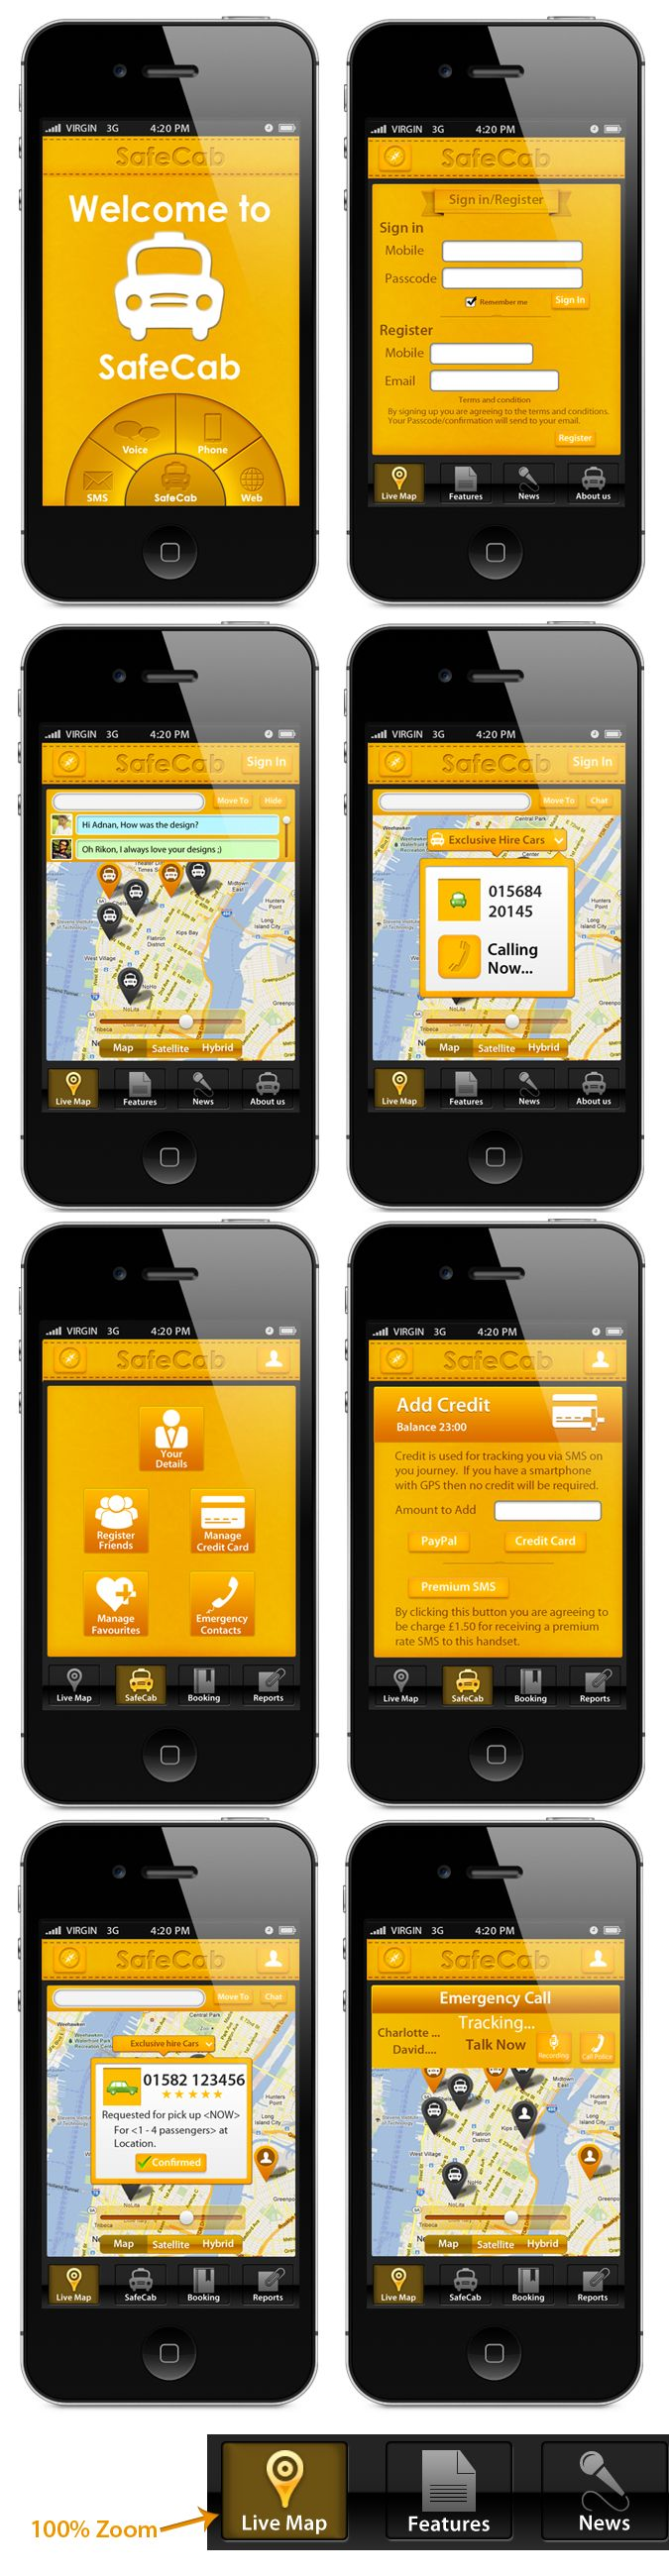 Safecab mobile app design